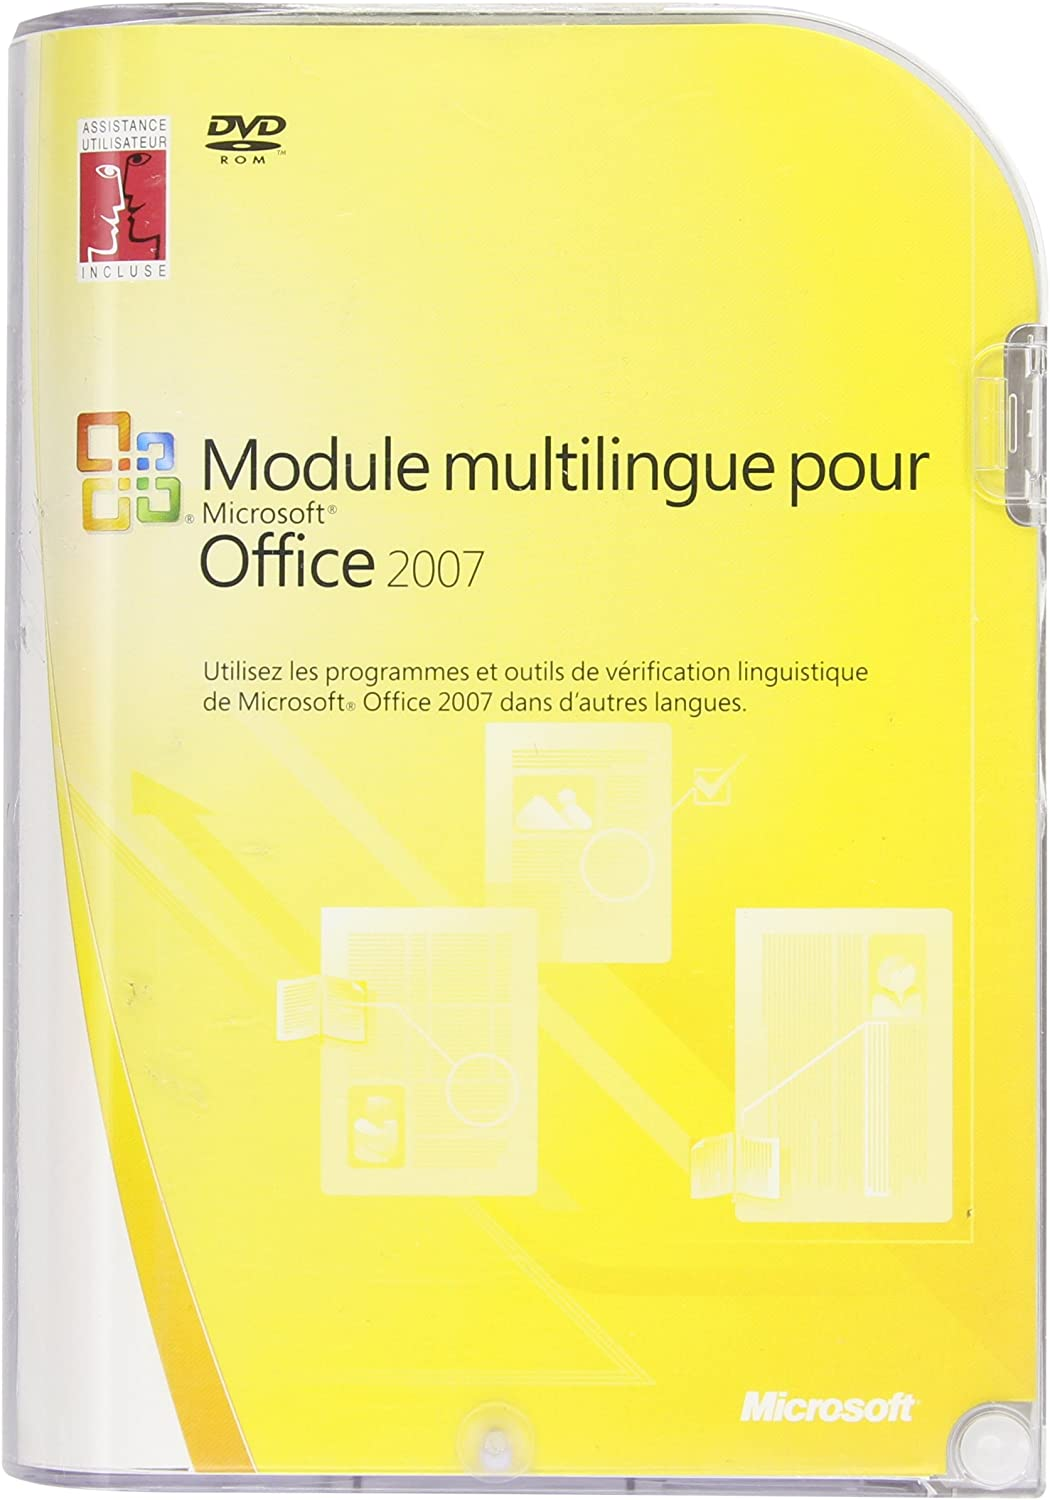 Microsoft Office Multi-Language Pack 2007 - Complete package - 1 PC - DVD - Win - French - Suites de programas (1 usuario(s), Full): Amazon.es: Software